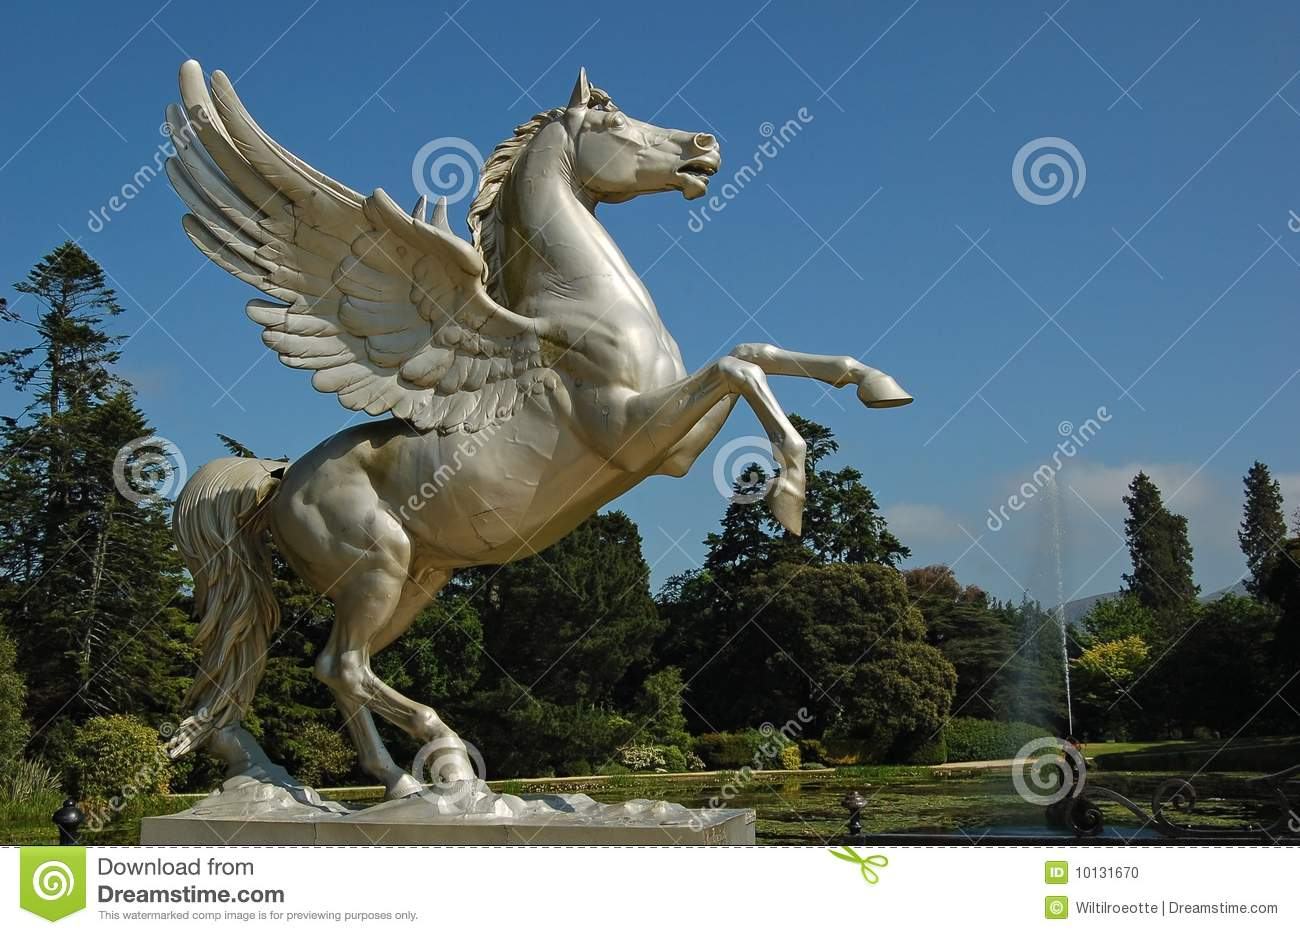 Flying Horse Stock Photos Download 1 502 Images